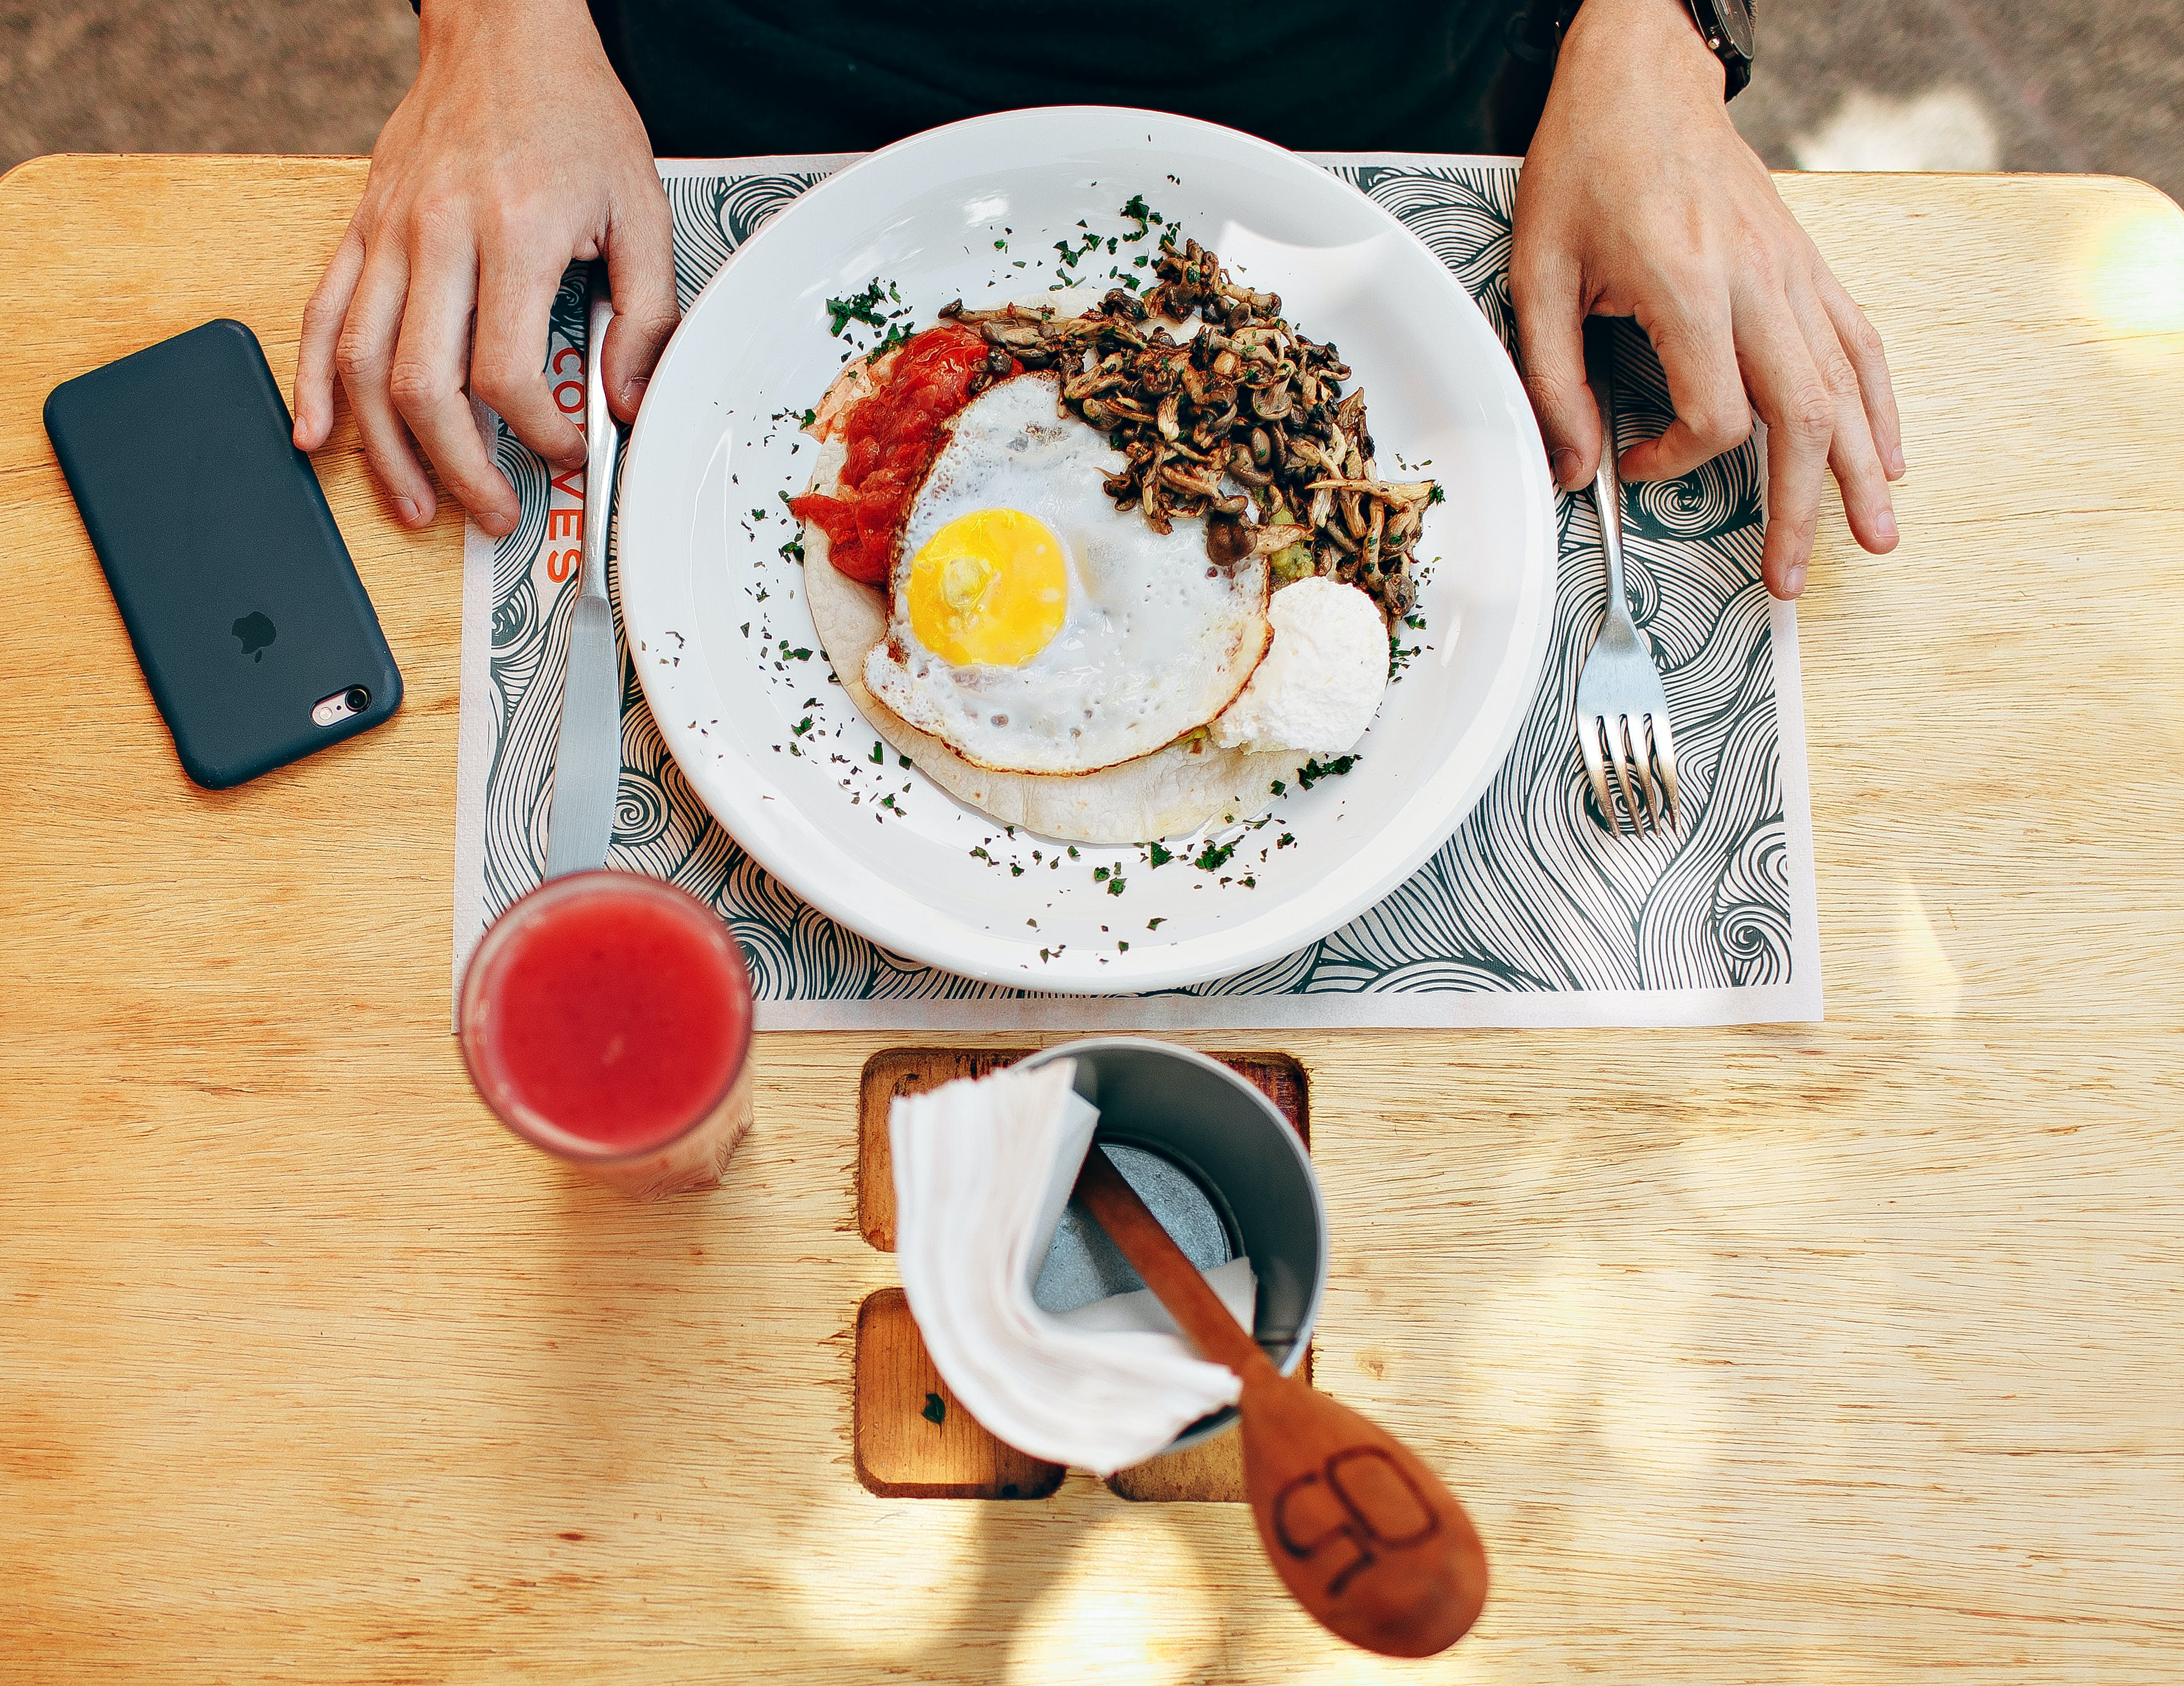 Fried Egg With Plain Rice on White Plate Beside Stainless Steel Fork With Clear Drinking Glass on Top Table